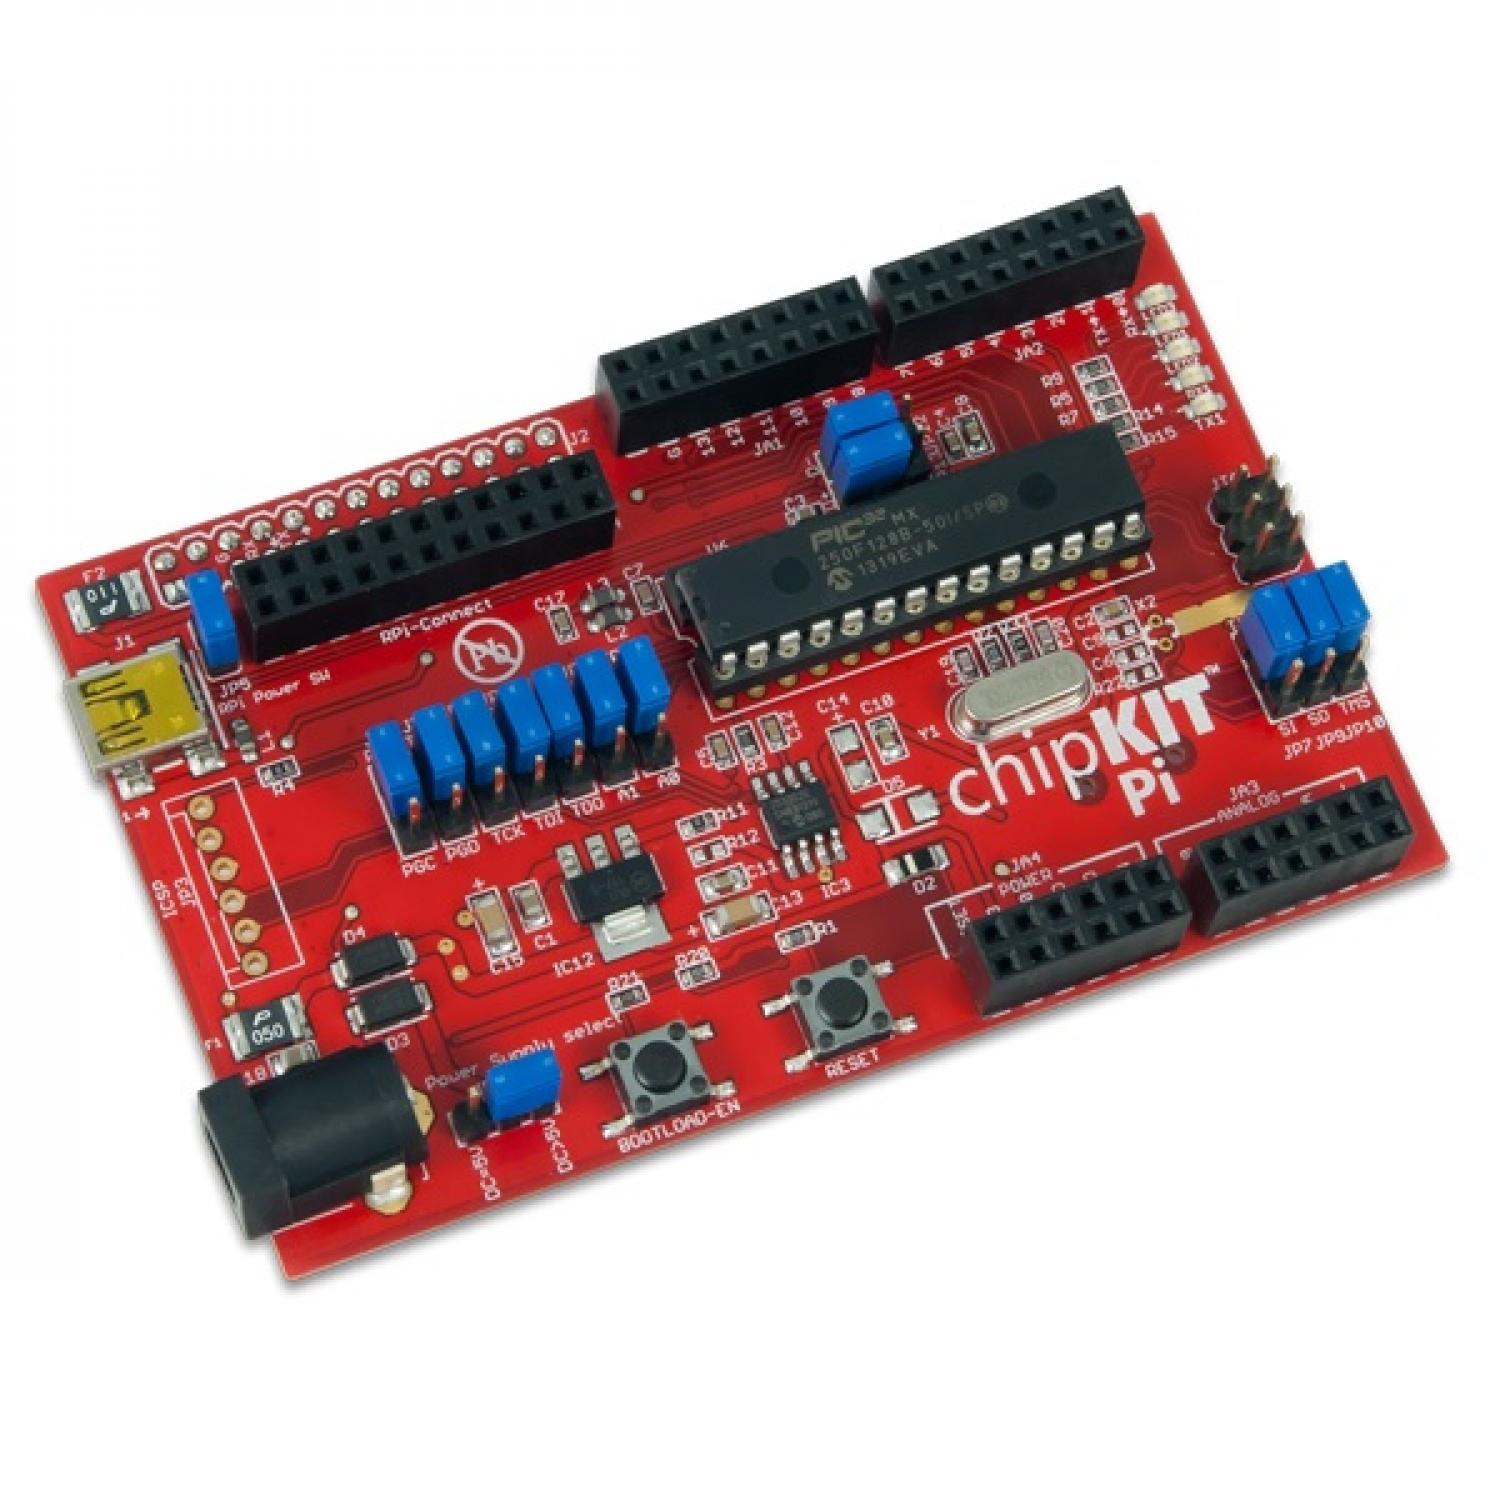 chipKit Pi for Raspberry Pi